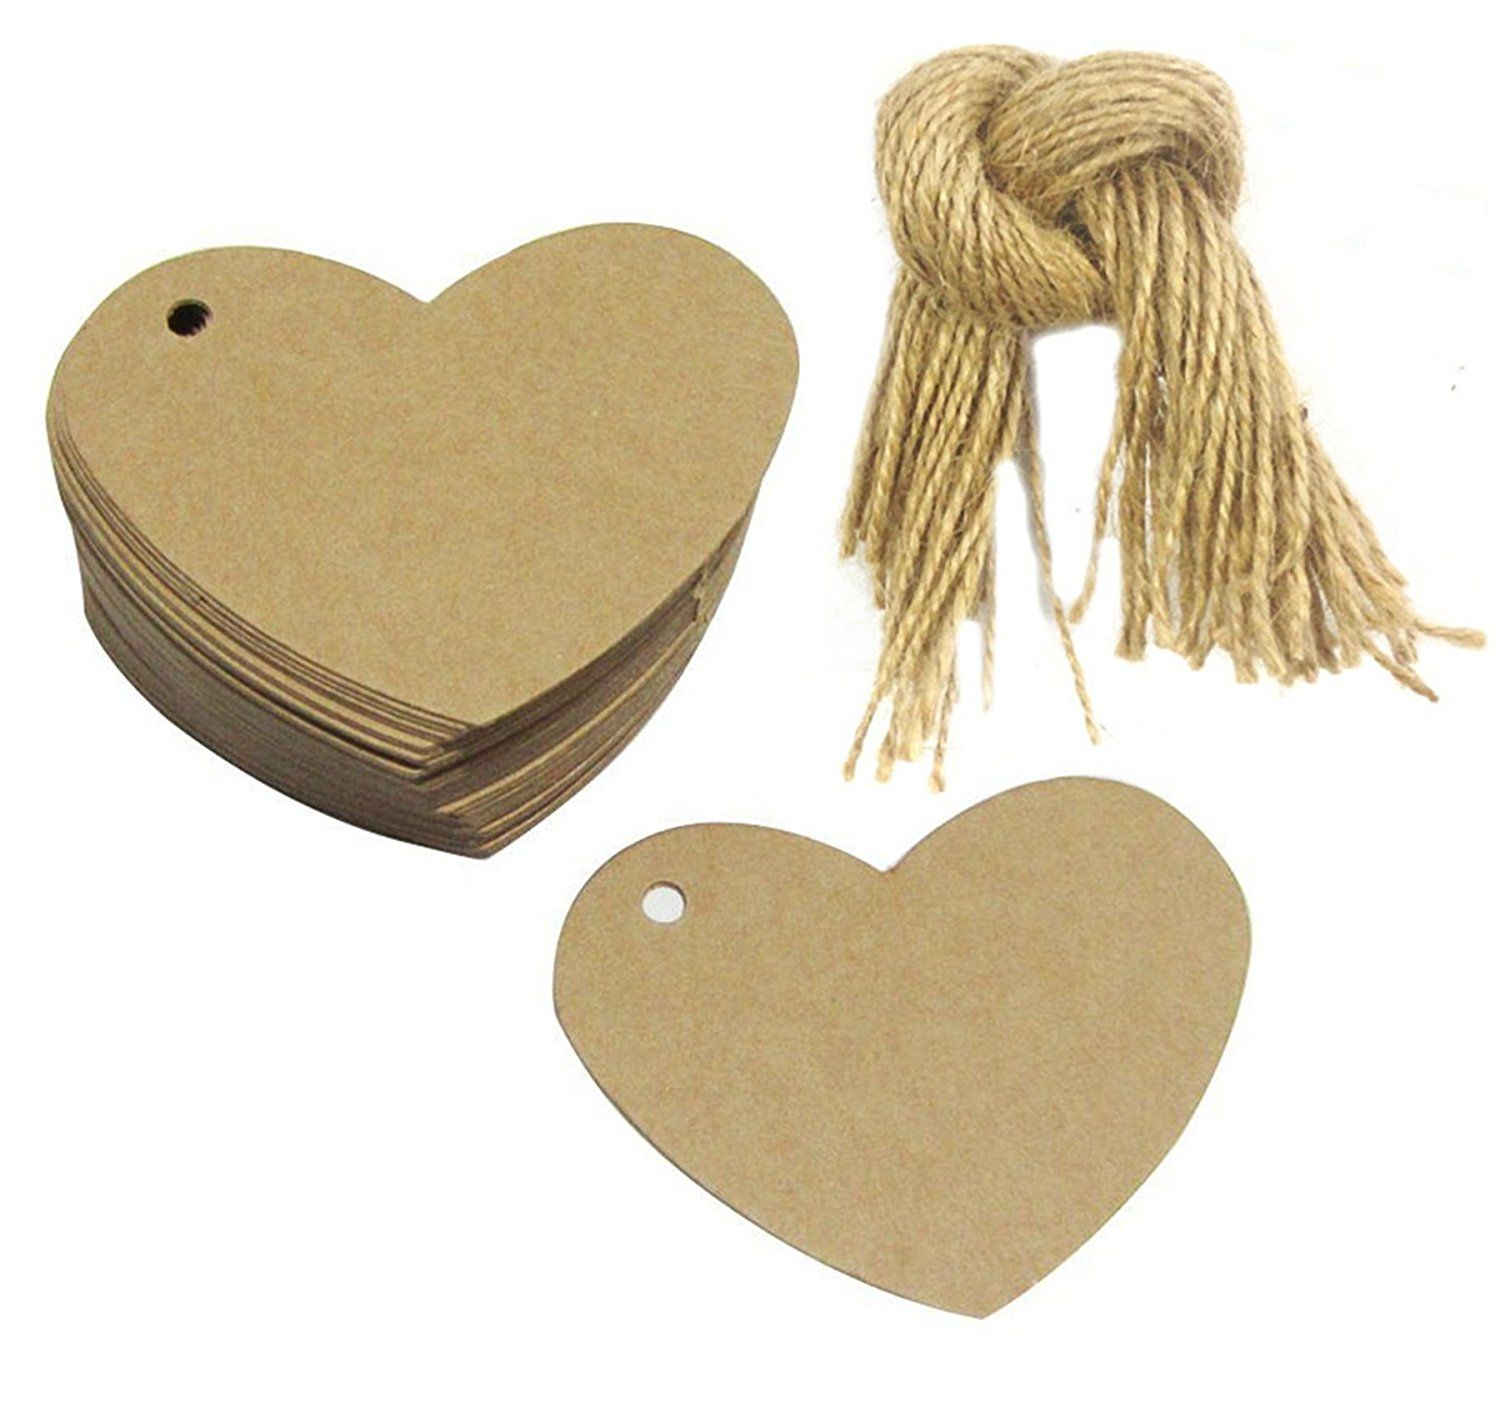 Mr label heart shaped multi function kraft paper tags wholesale mr label heart shaped multi function kraft paper tags wholesale gift jeuxipadfo Choice Image